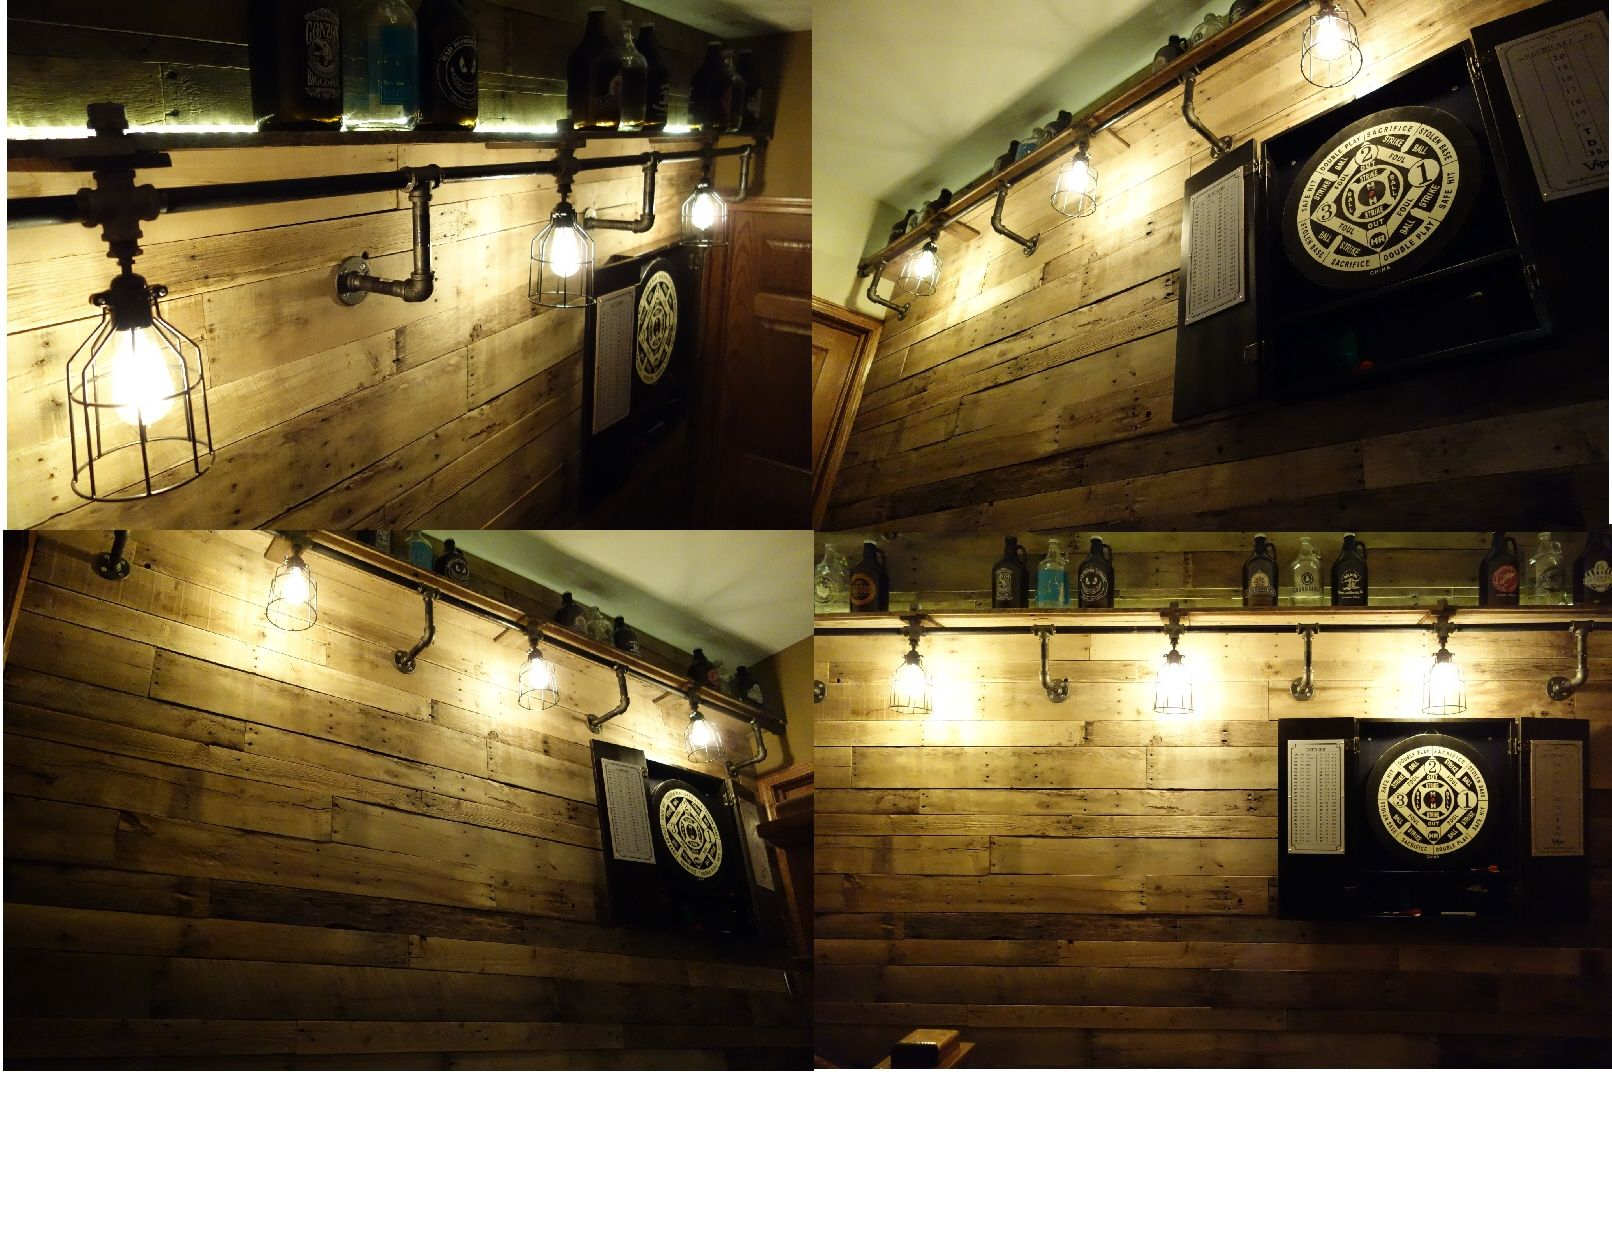 Pallet wall industrial lighting edison bulbs dart board for Diy dartboard lighting